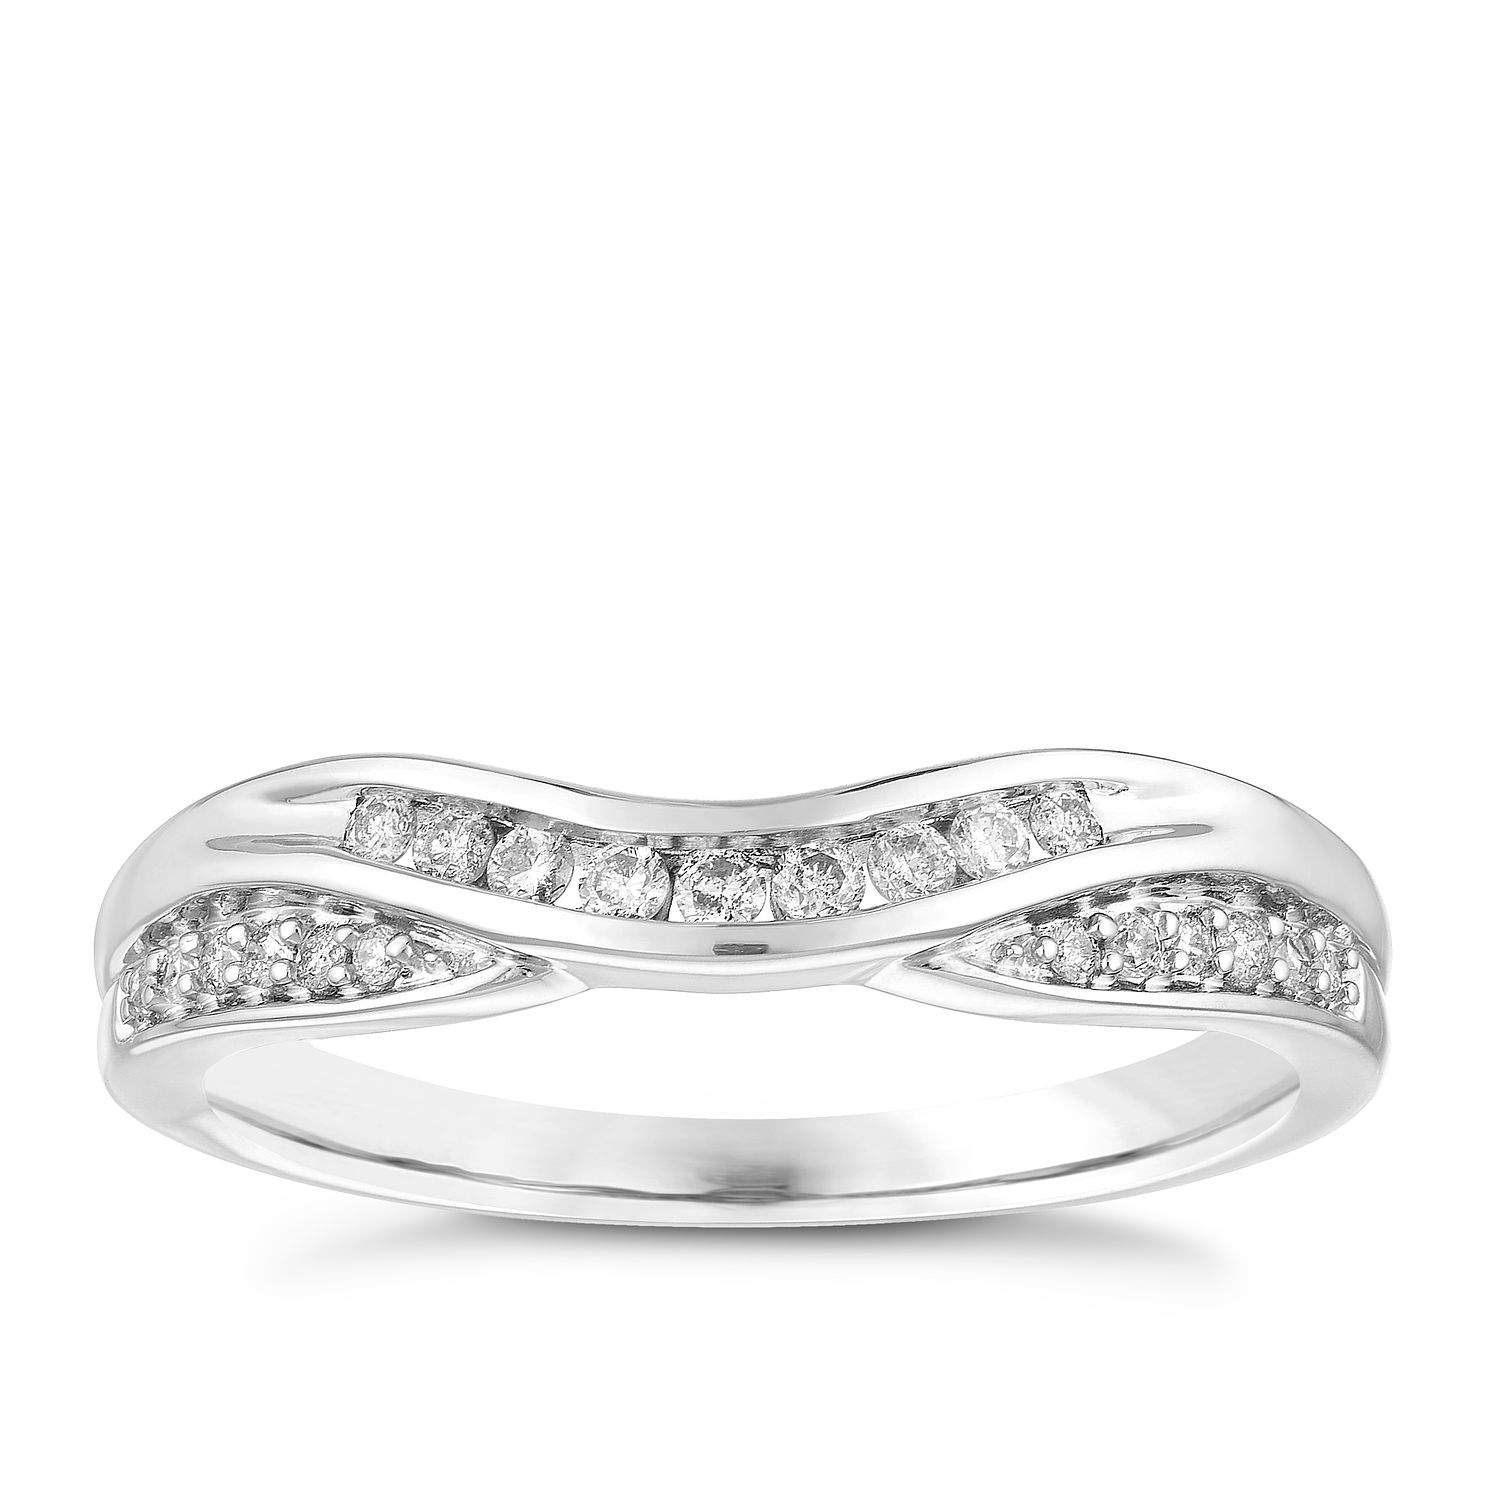 18ct White Gold 0.15ct Diamond Set Shaped Wedding Ring - Product number 3972895